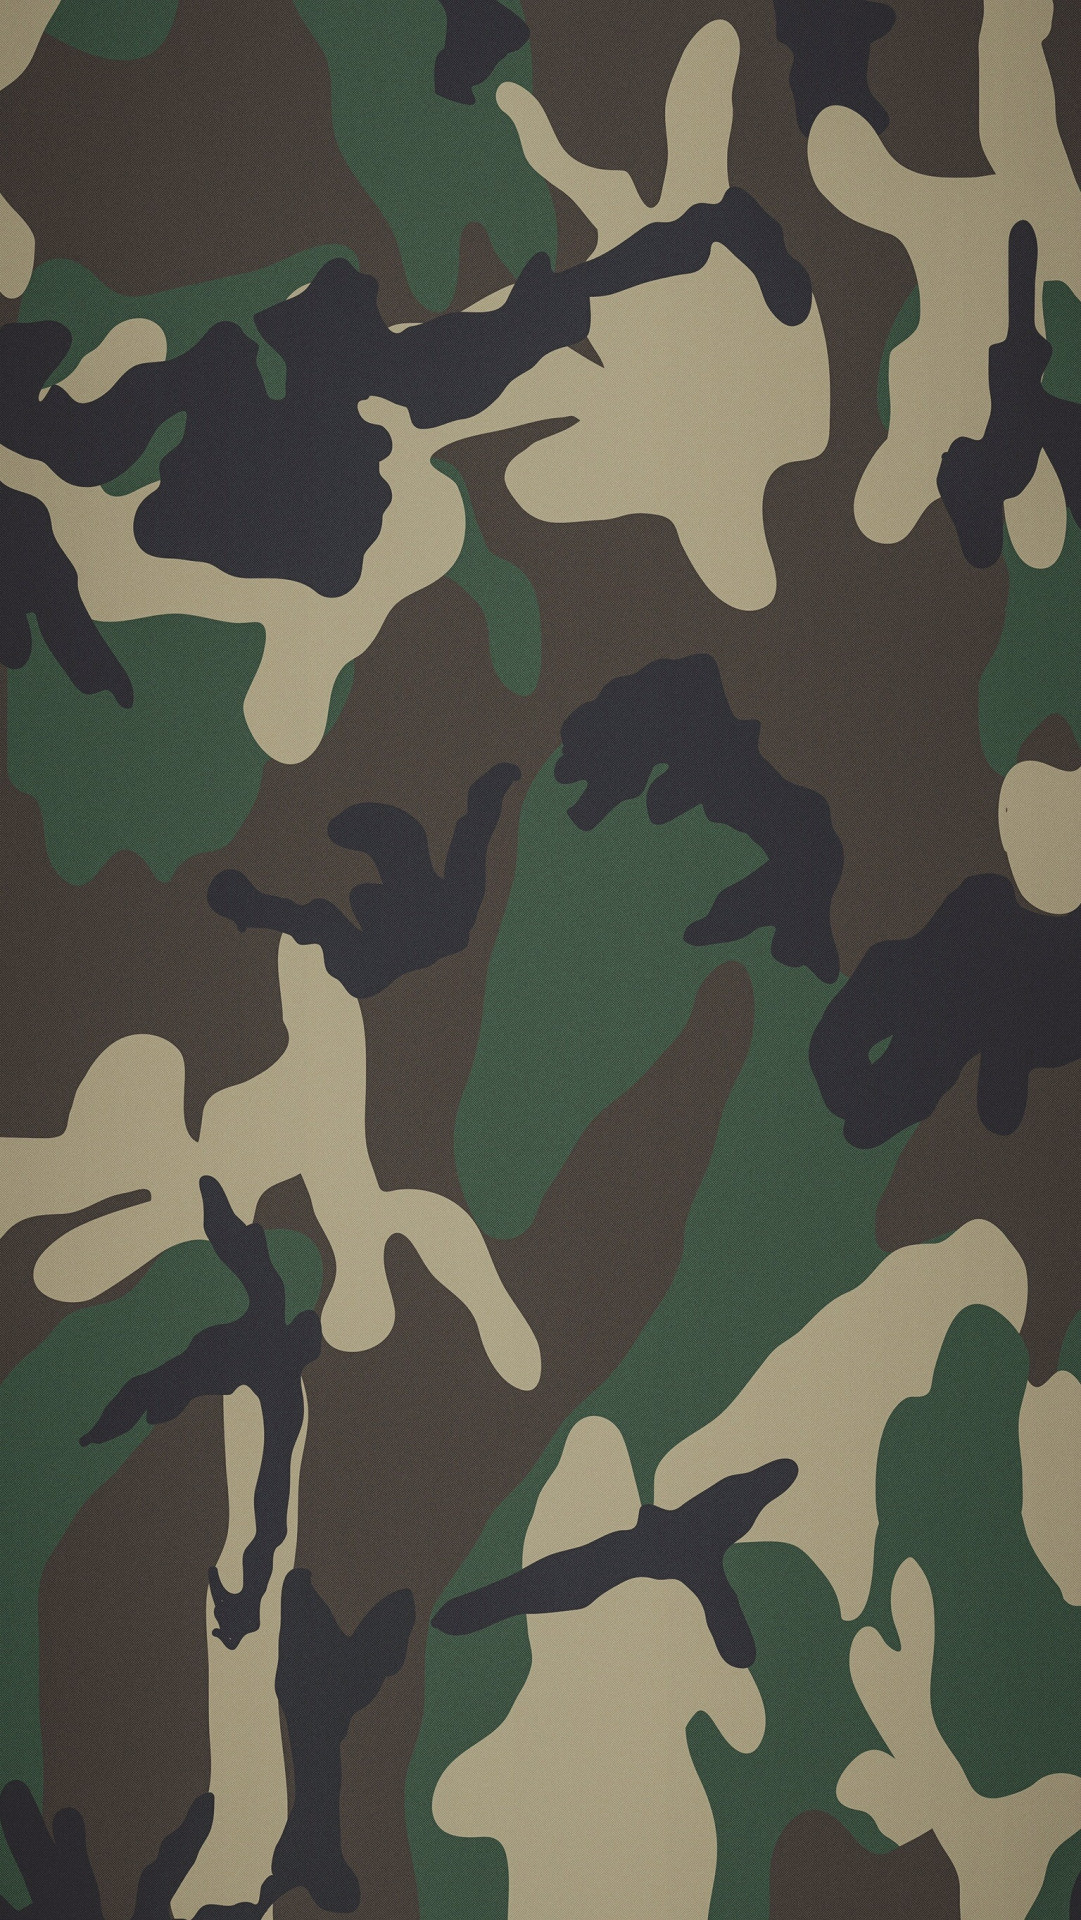 Camo Wallpapers Android Apps on Google Play   HD Wallpapers   Pinterest   Camouflage  wallpaper, Wallpaper and Wallpapers android